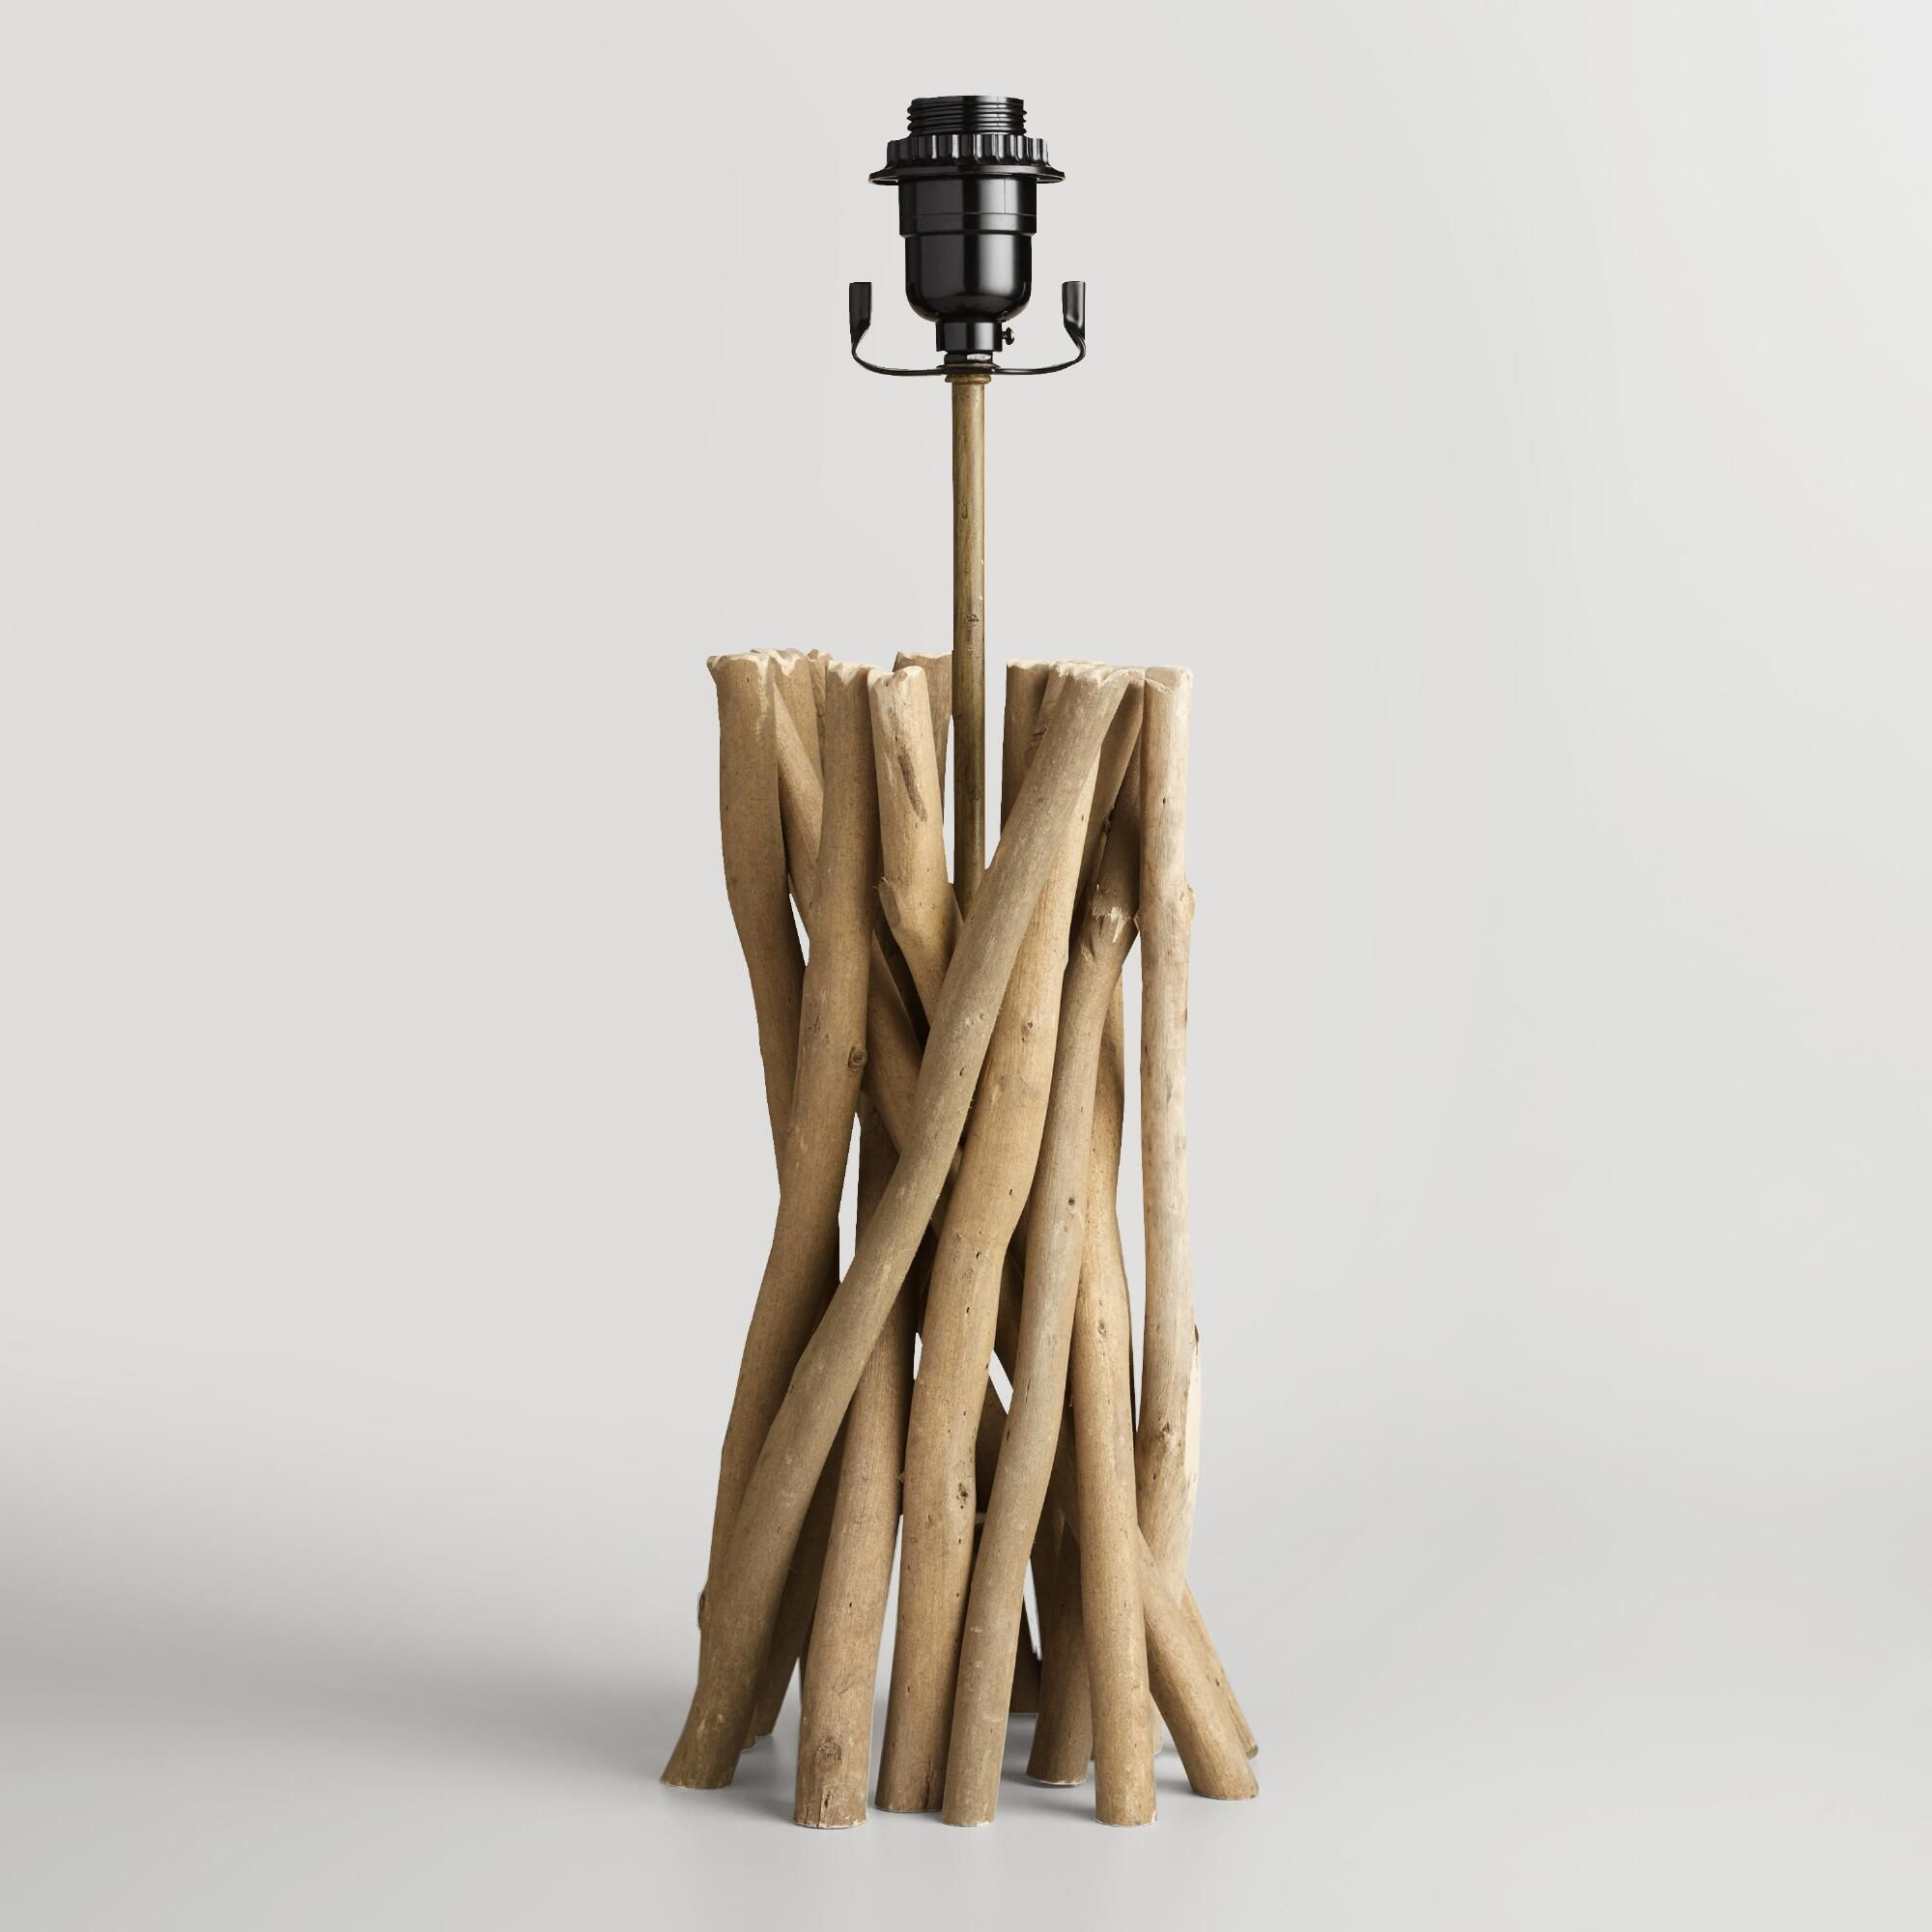 Driftwood table lamp base driftwood table table lamp shades and our exclusive driftwood table lamp base is intricately hand assembled by skilled artisans in the philippines geotapseo Image collections